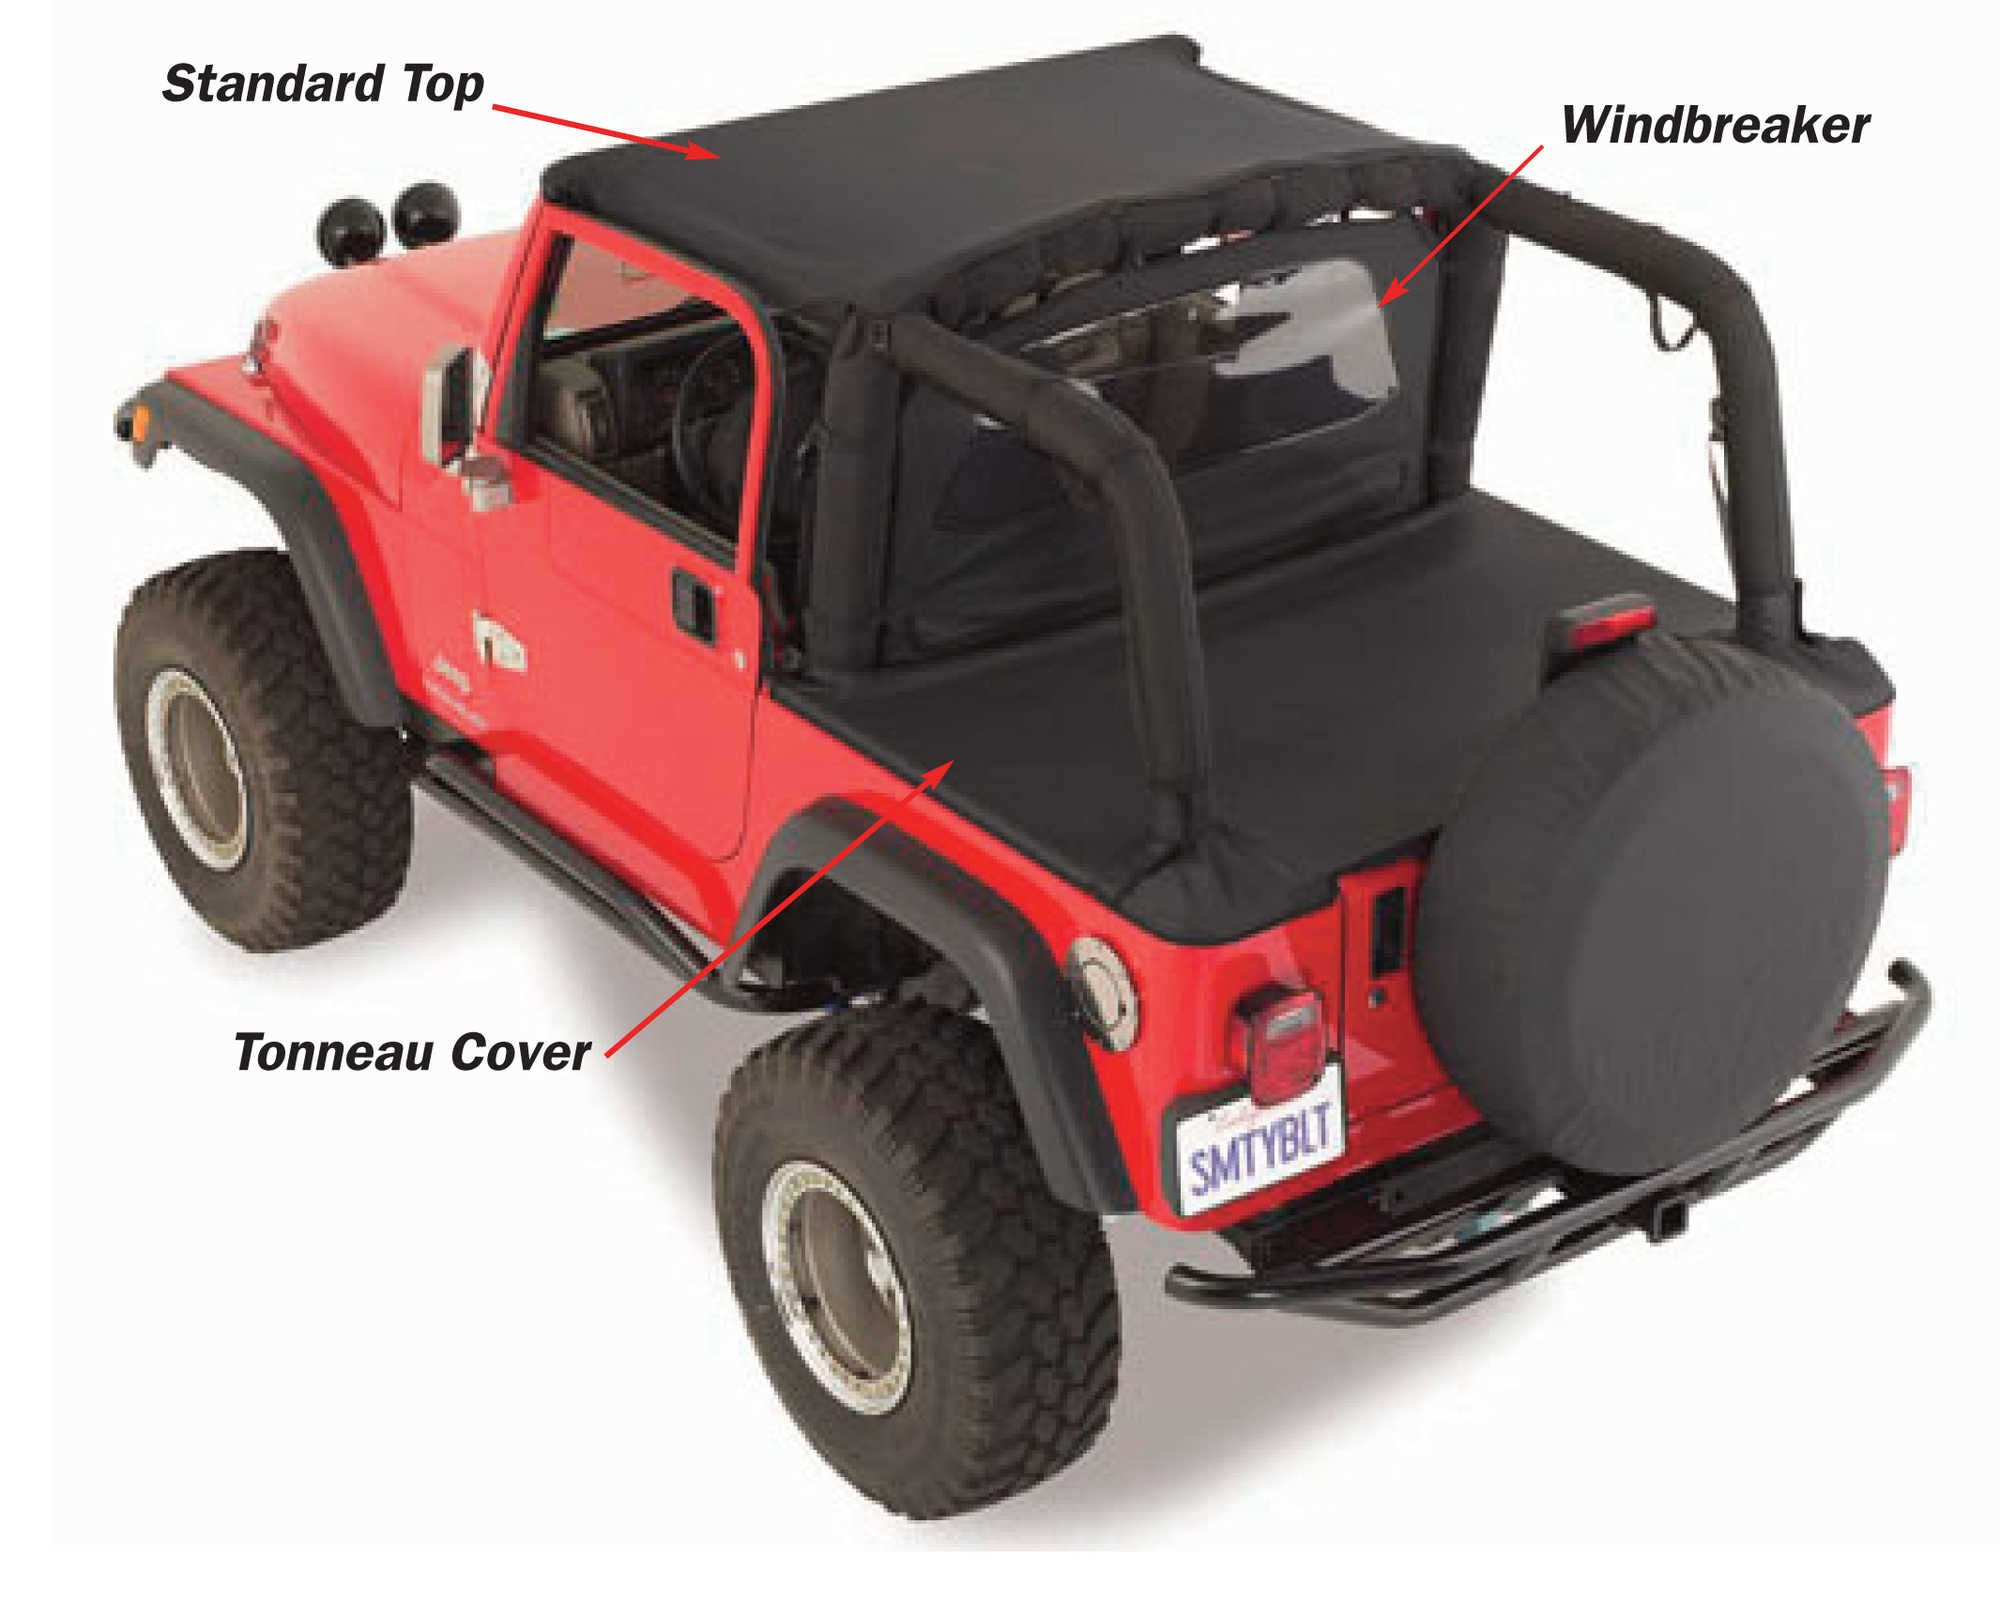 Smittybilt Tonneau Cover For 97 06 Jeep Wrangler TJ With Factory Soft Top    Black